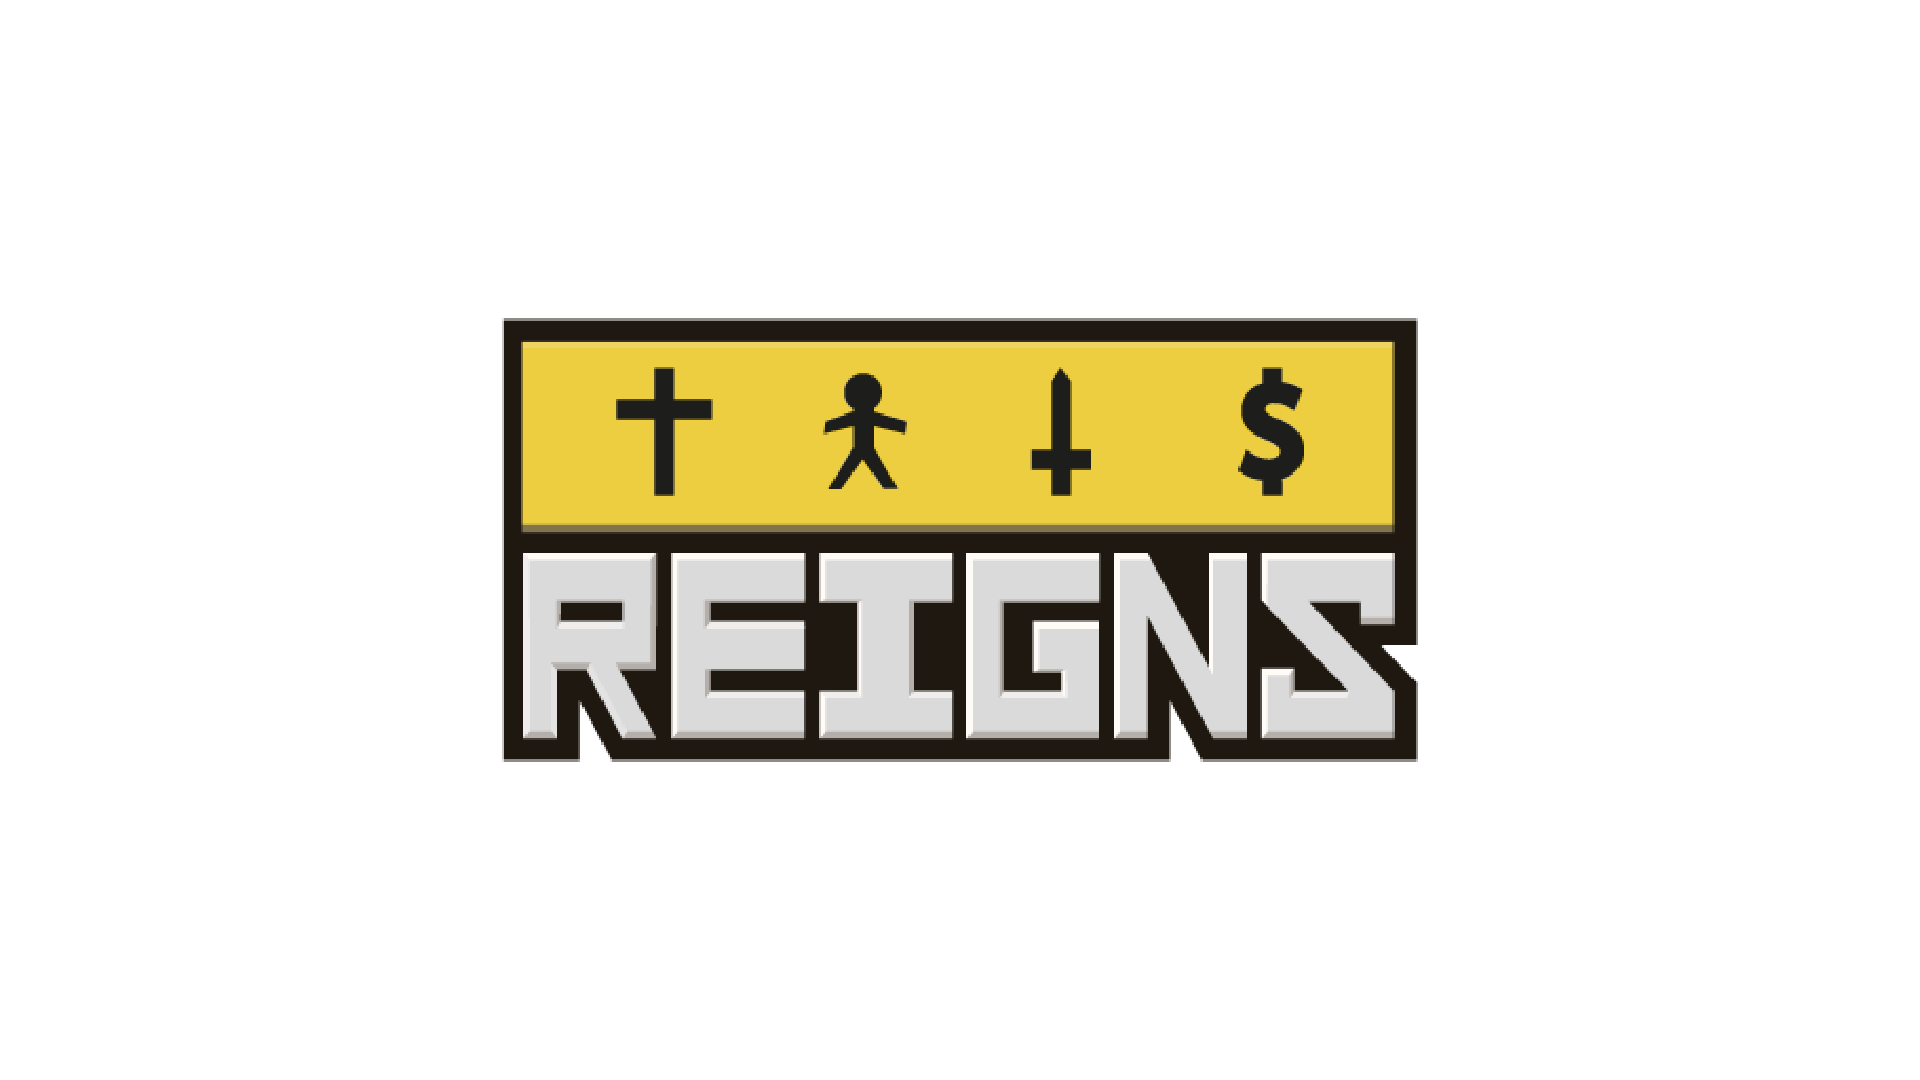 reigns_yellow